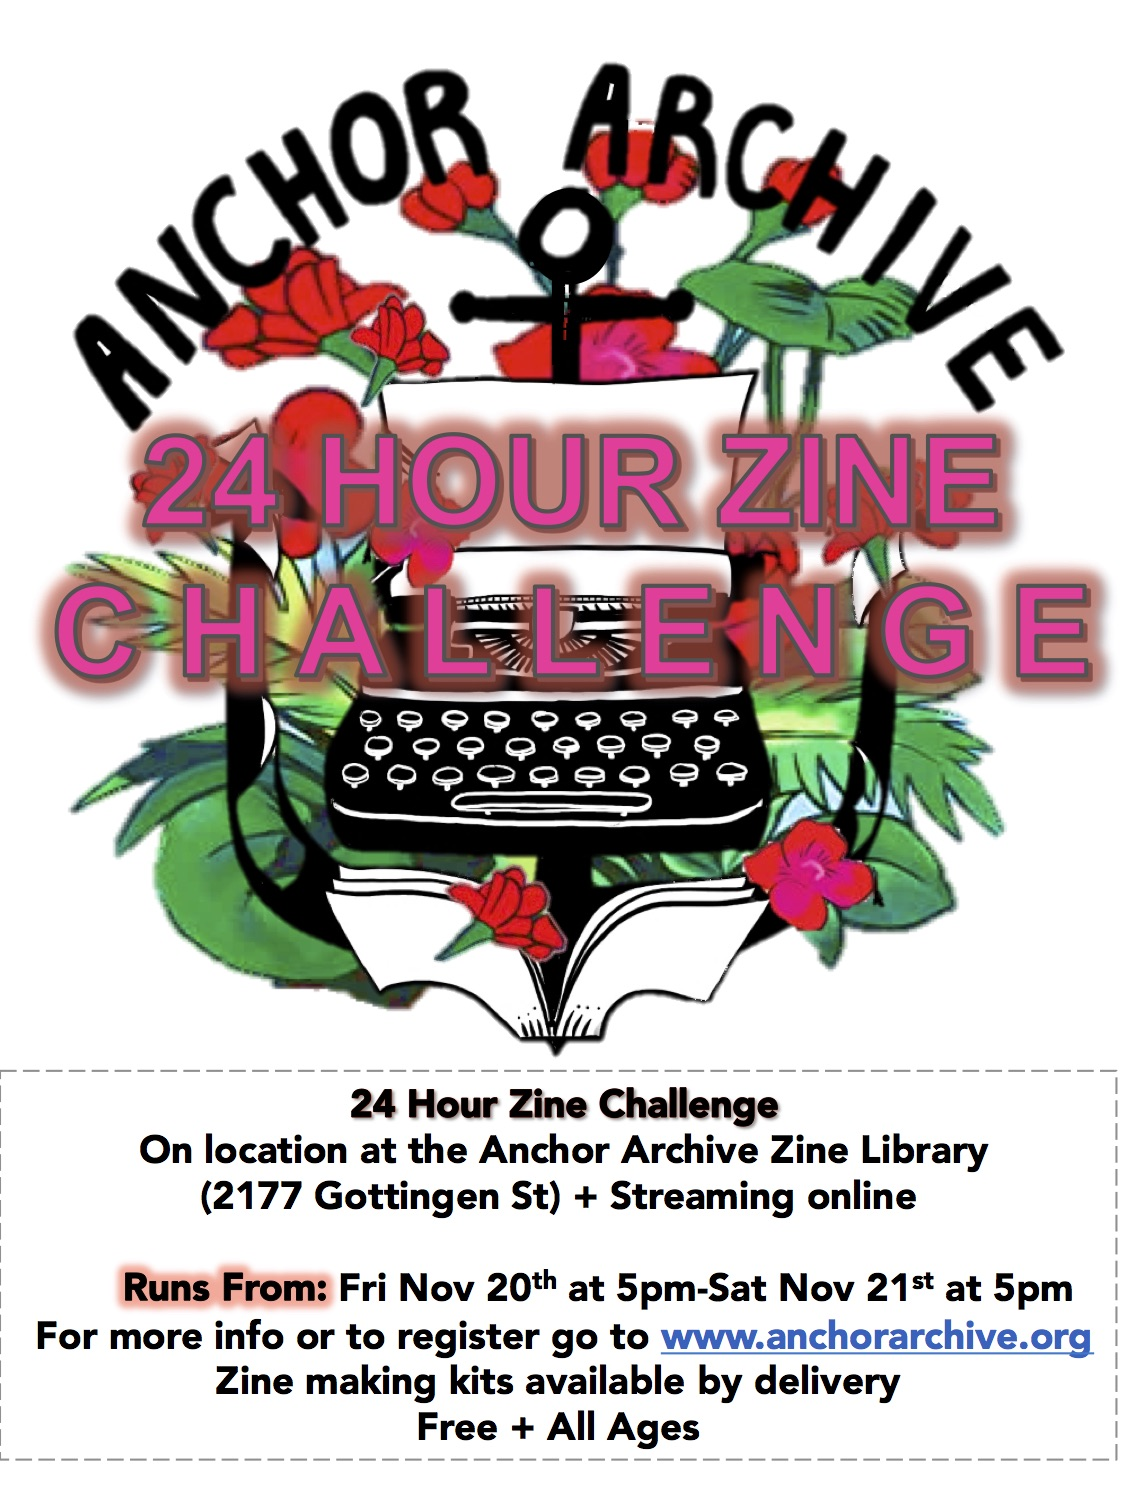 Poster of 24 hour zine challenge, including image of typewriter with floral background and text information included in the body of blog post.